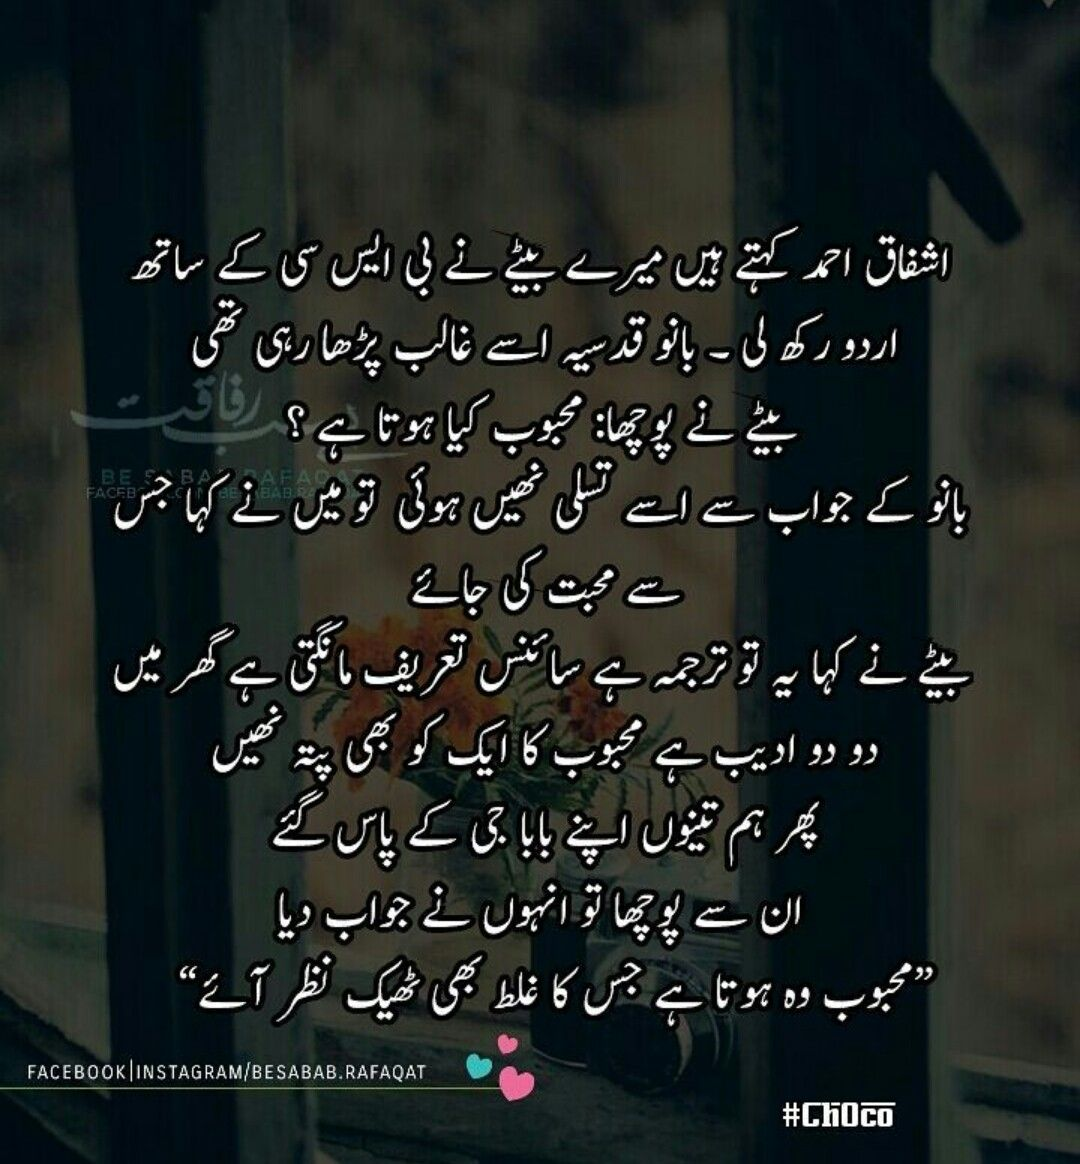 Ashfaq Ahmad (With images) | Bano qudsia quotes, Thoughts ...